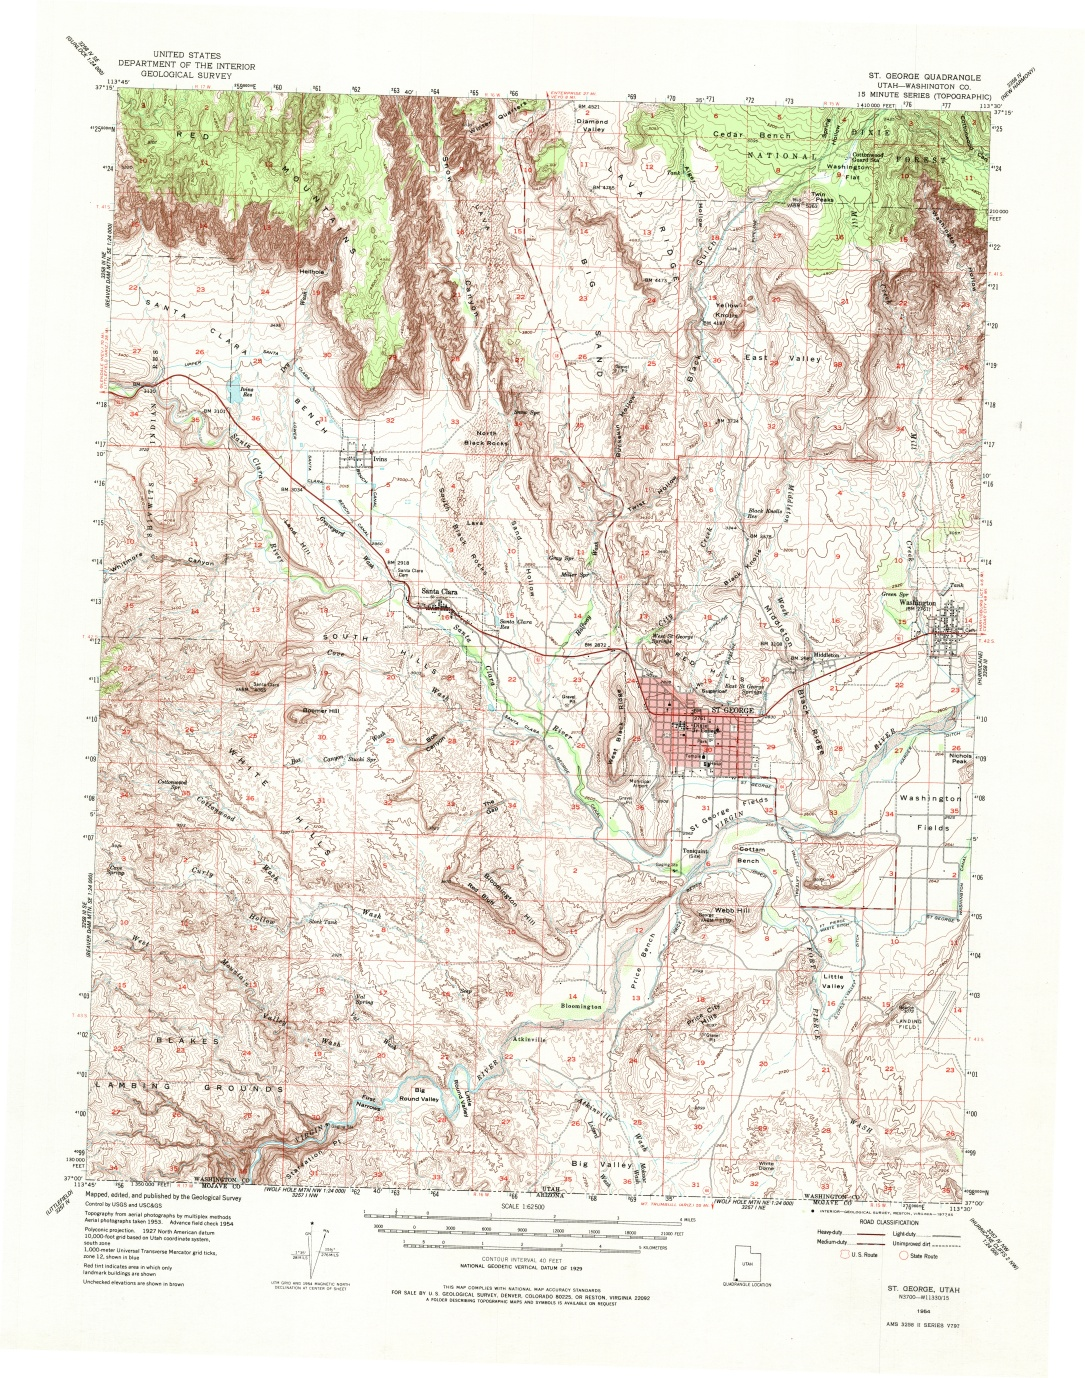 usgs map of st george ·  usgs map of st george and washington · street map of st george from the telephone book. washington county maps and charts